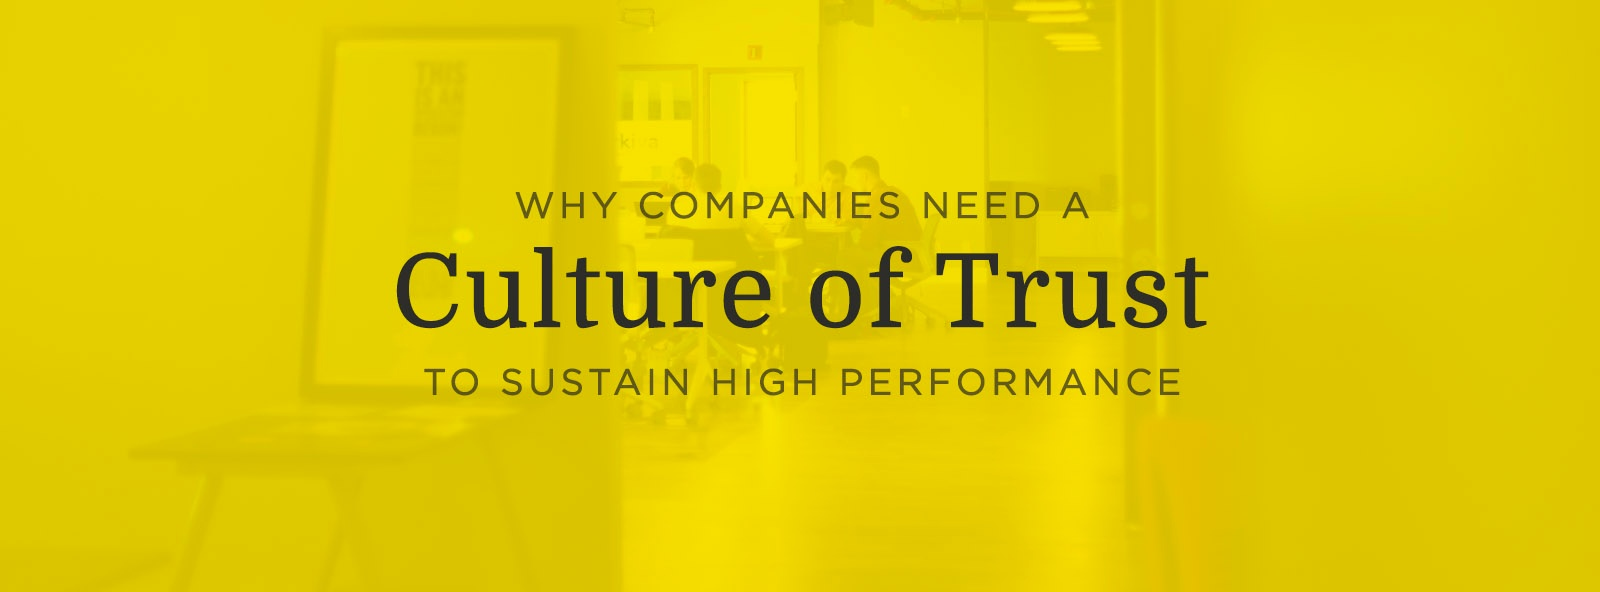 Companies Culture of Trust High Performance